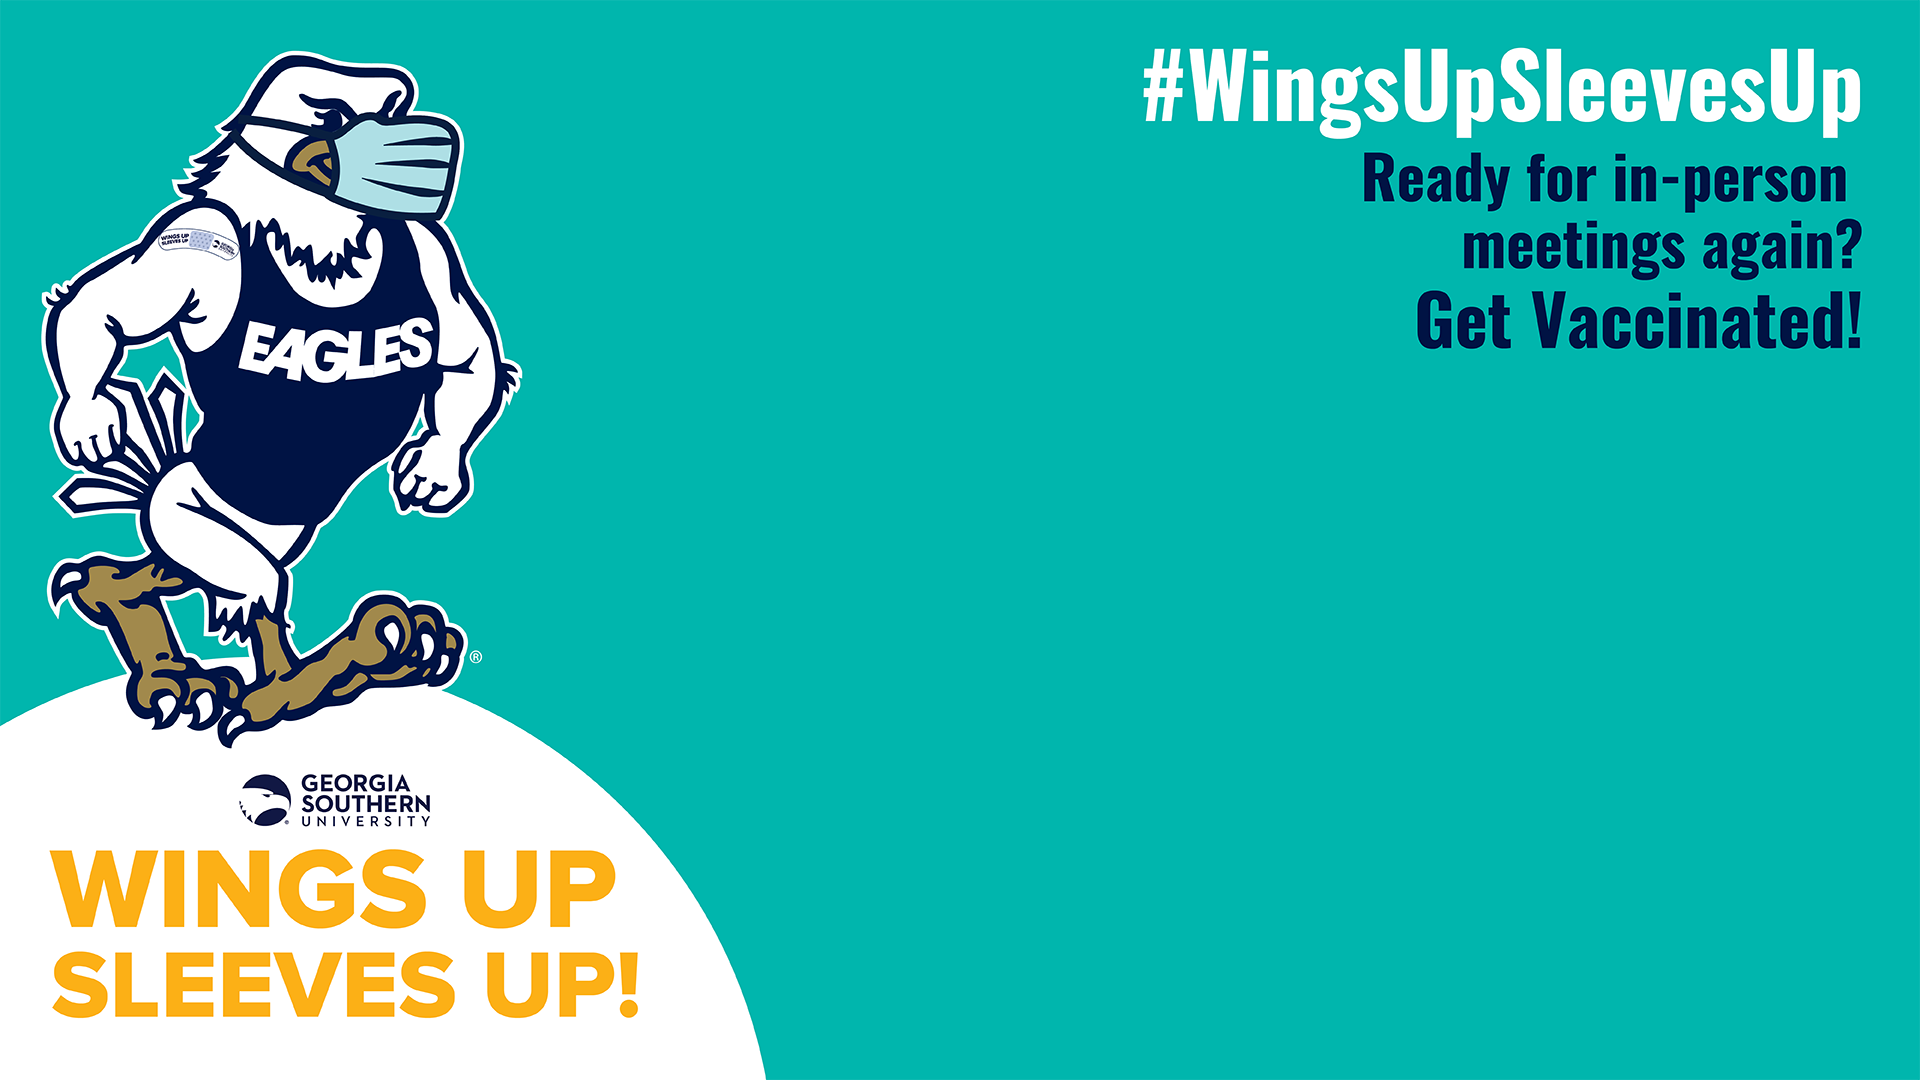 download a wings up sleeves up background